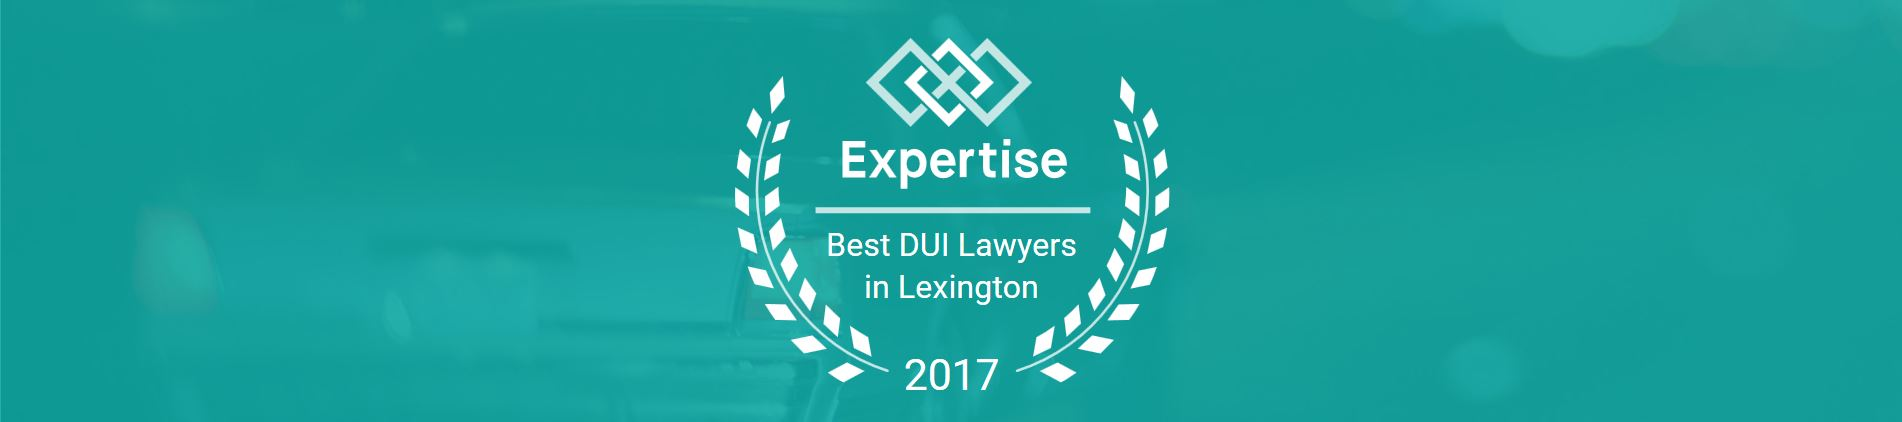 best dui lawyer lexington